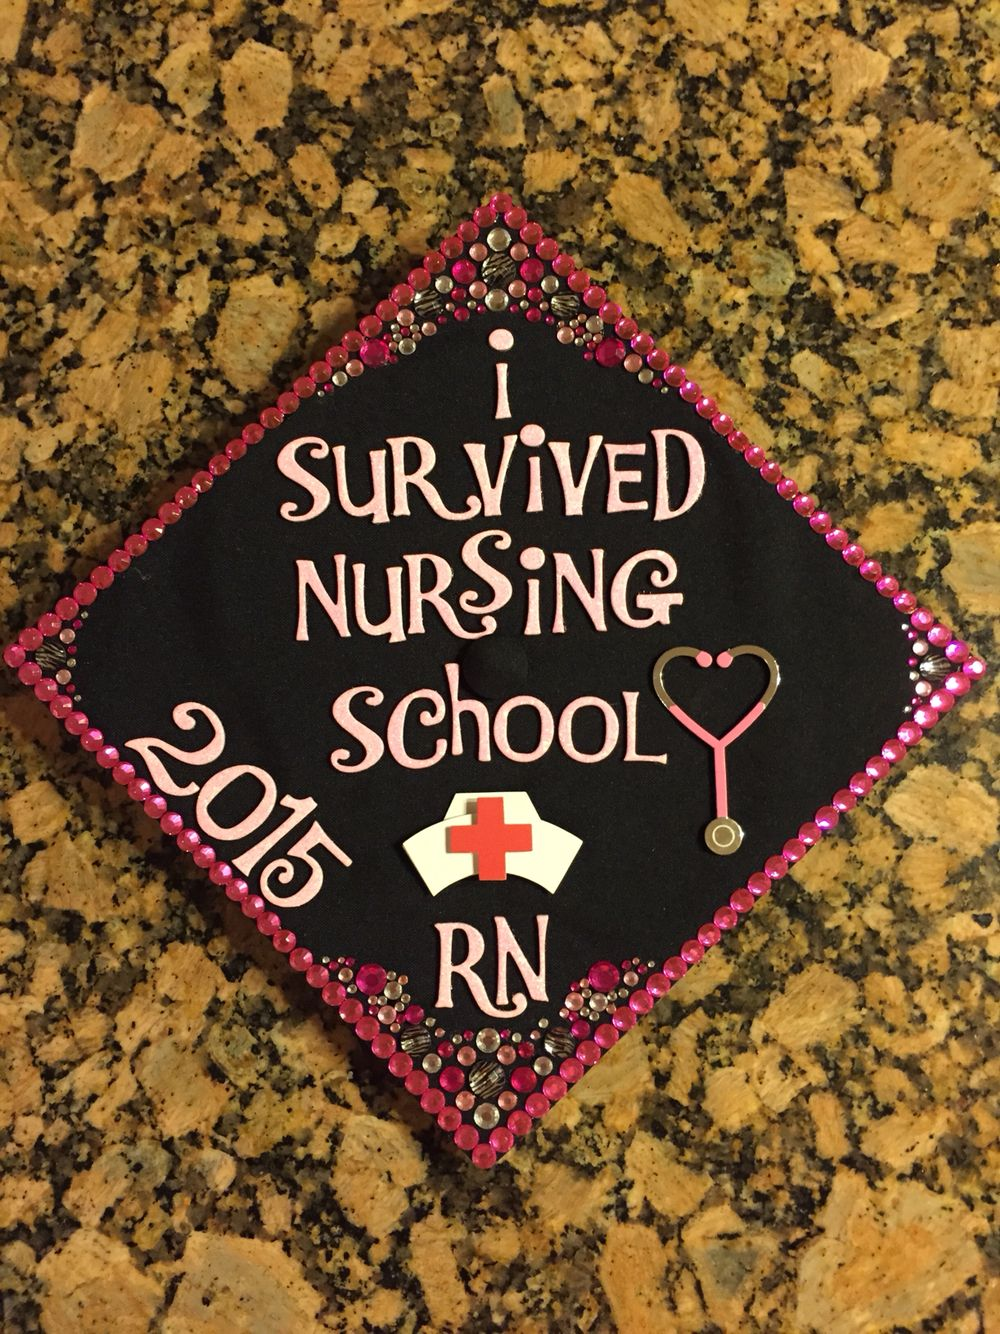 Nursing School Graduation Cap Decoration Graduation Caps